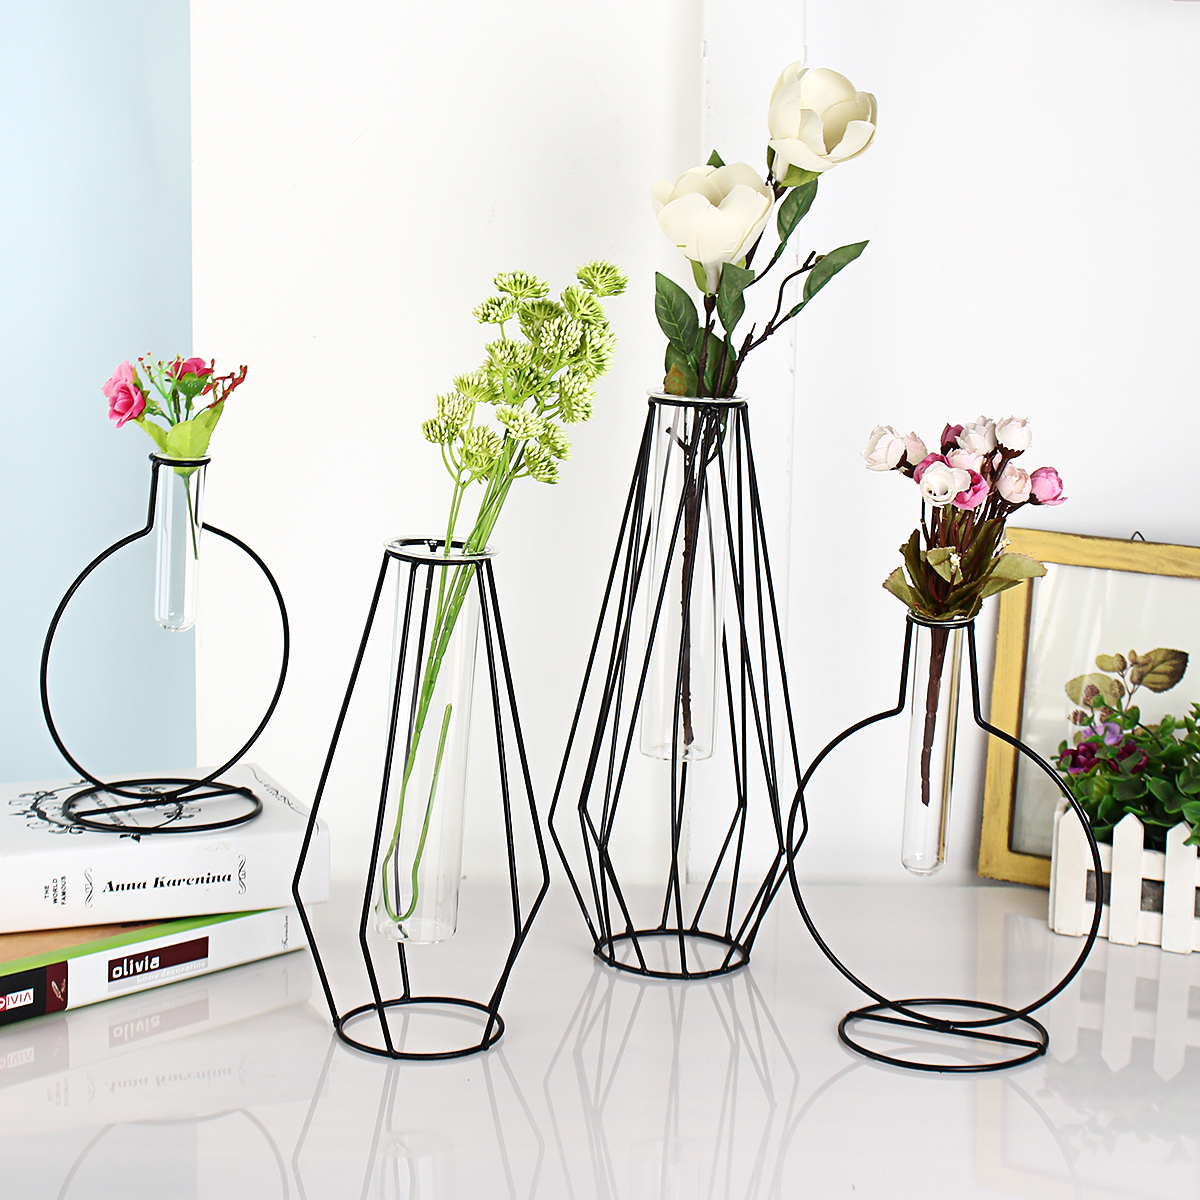 M Nordic Ins Household Ornaments Metal Iron Art Hydroponics Plant Glass Vase Nordic Vase Buy Online At Best Prices In Pakistan Daraz Pk